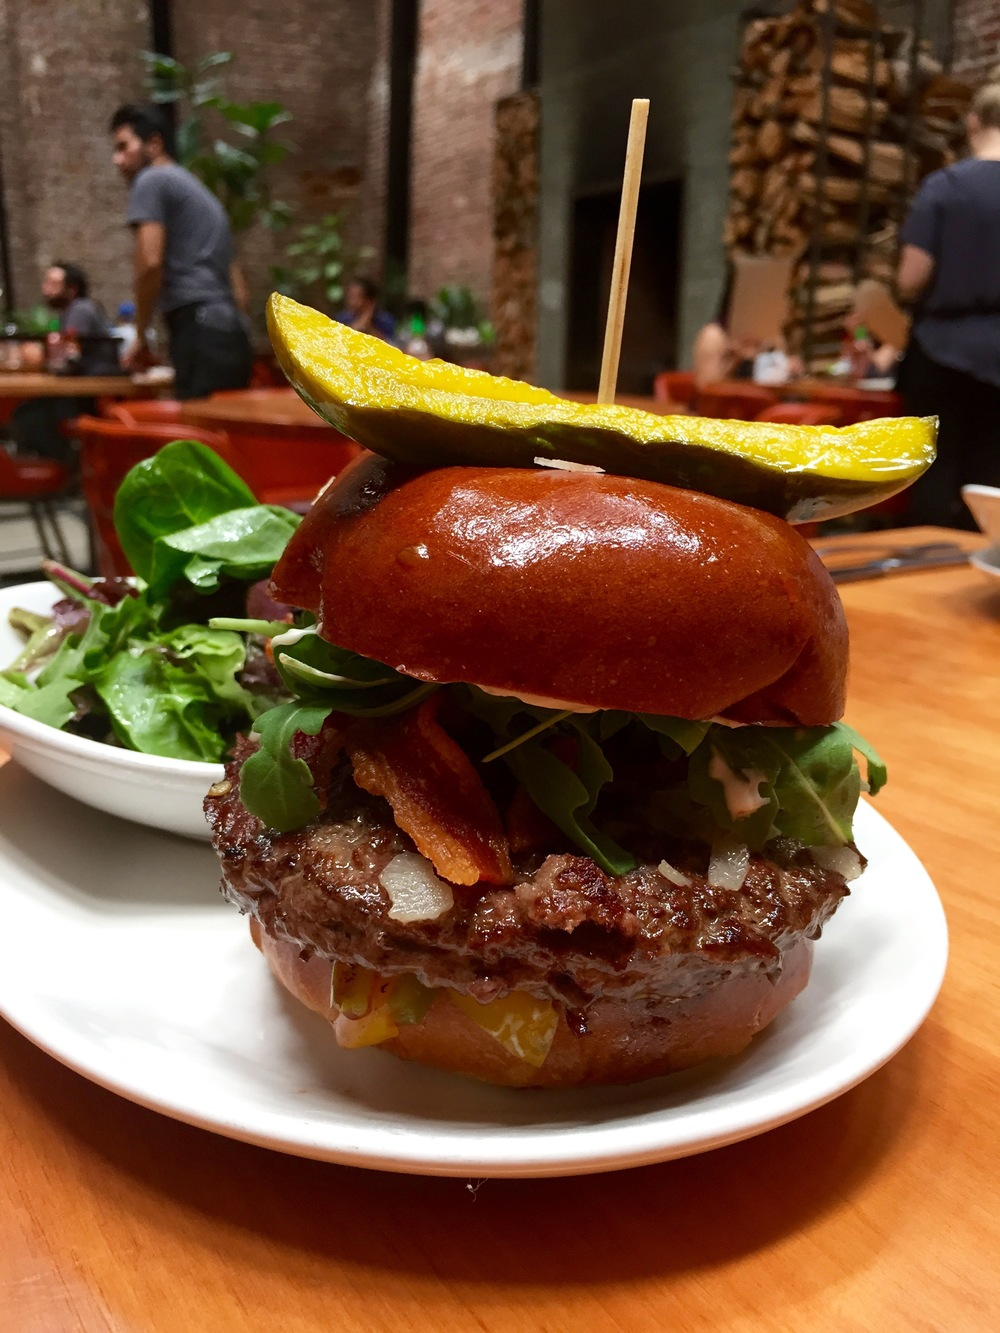 Mohawk Burger with  arugula, parmesan, crispy bacon, red onion, roasted peppers, and rosemary aioli.